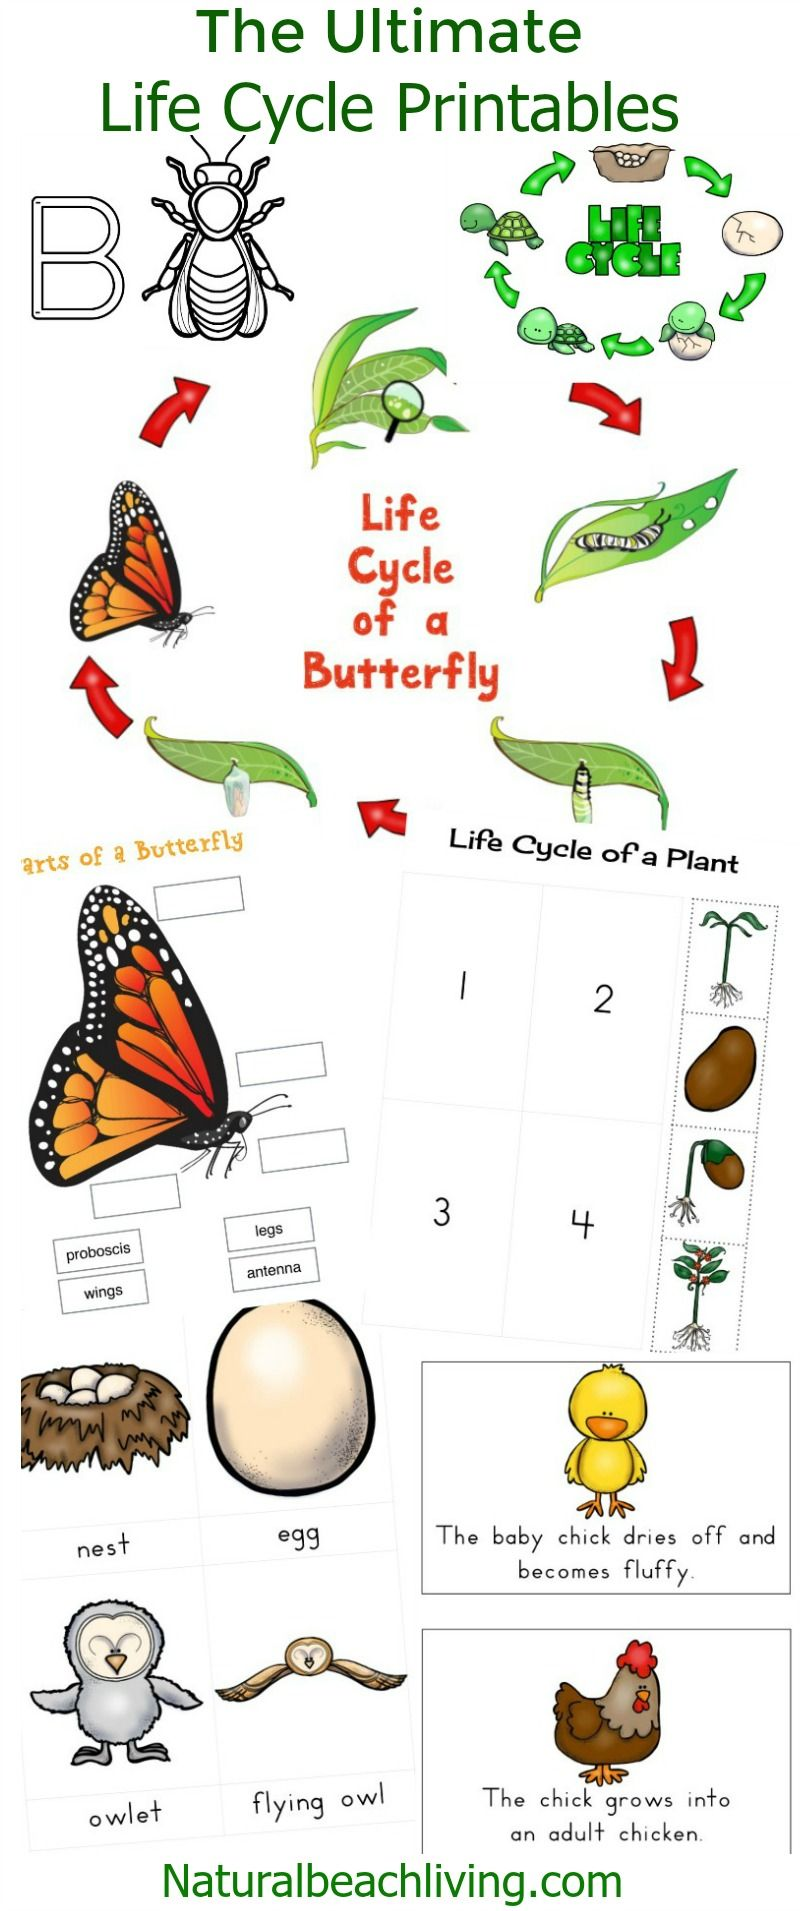 the ultimate life cycle printables science activities teaching preschool life cycles. Black Bedroom Furniture Sets. Home Design Ideas